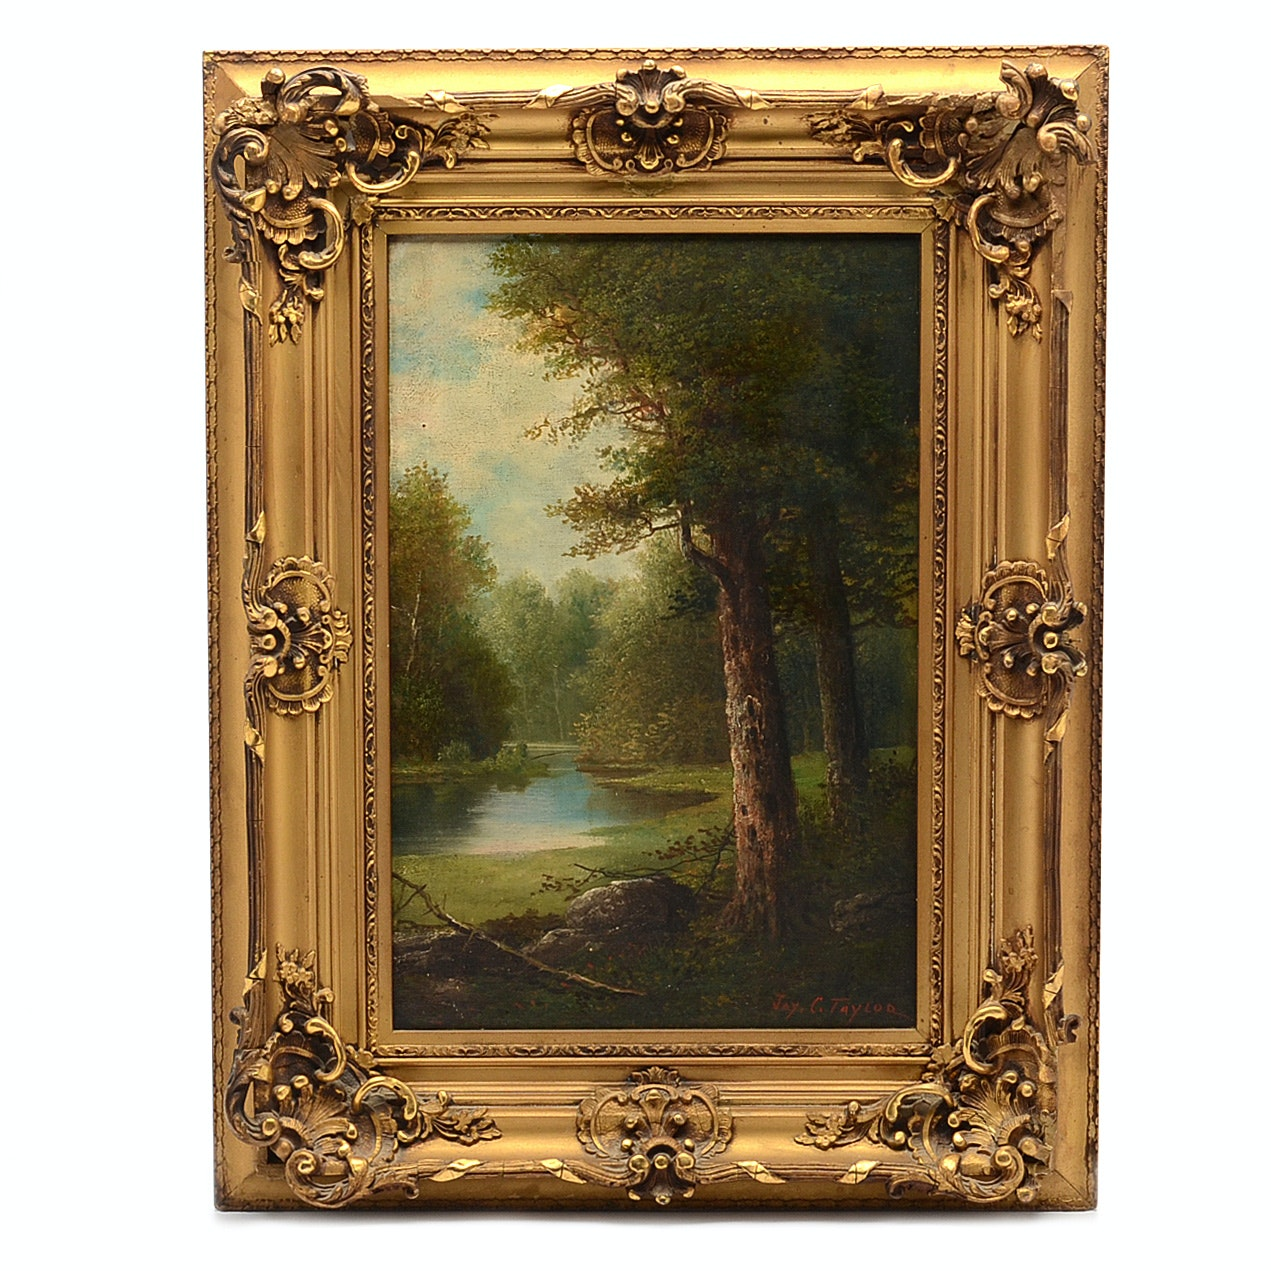 Jay C. Taylor Antique Oil Painting of Forested Landscape